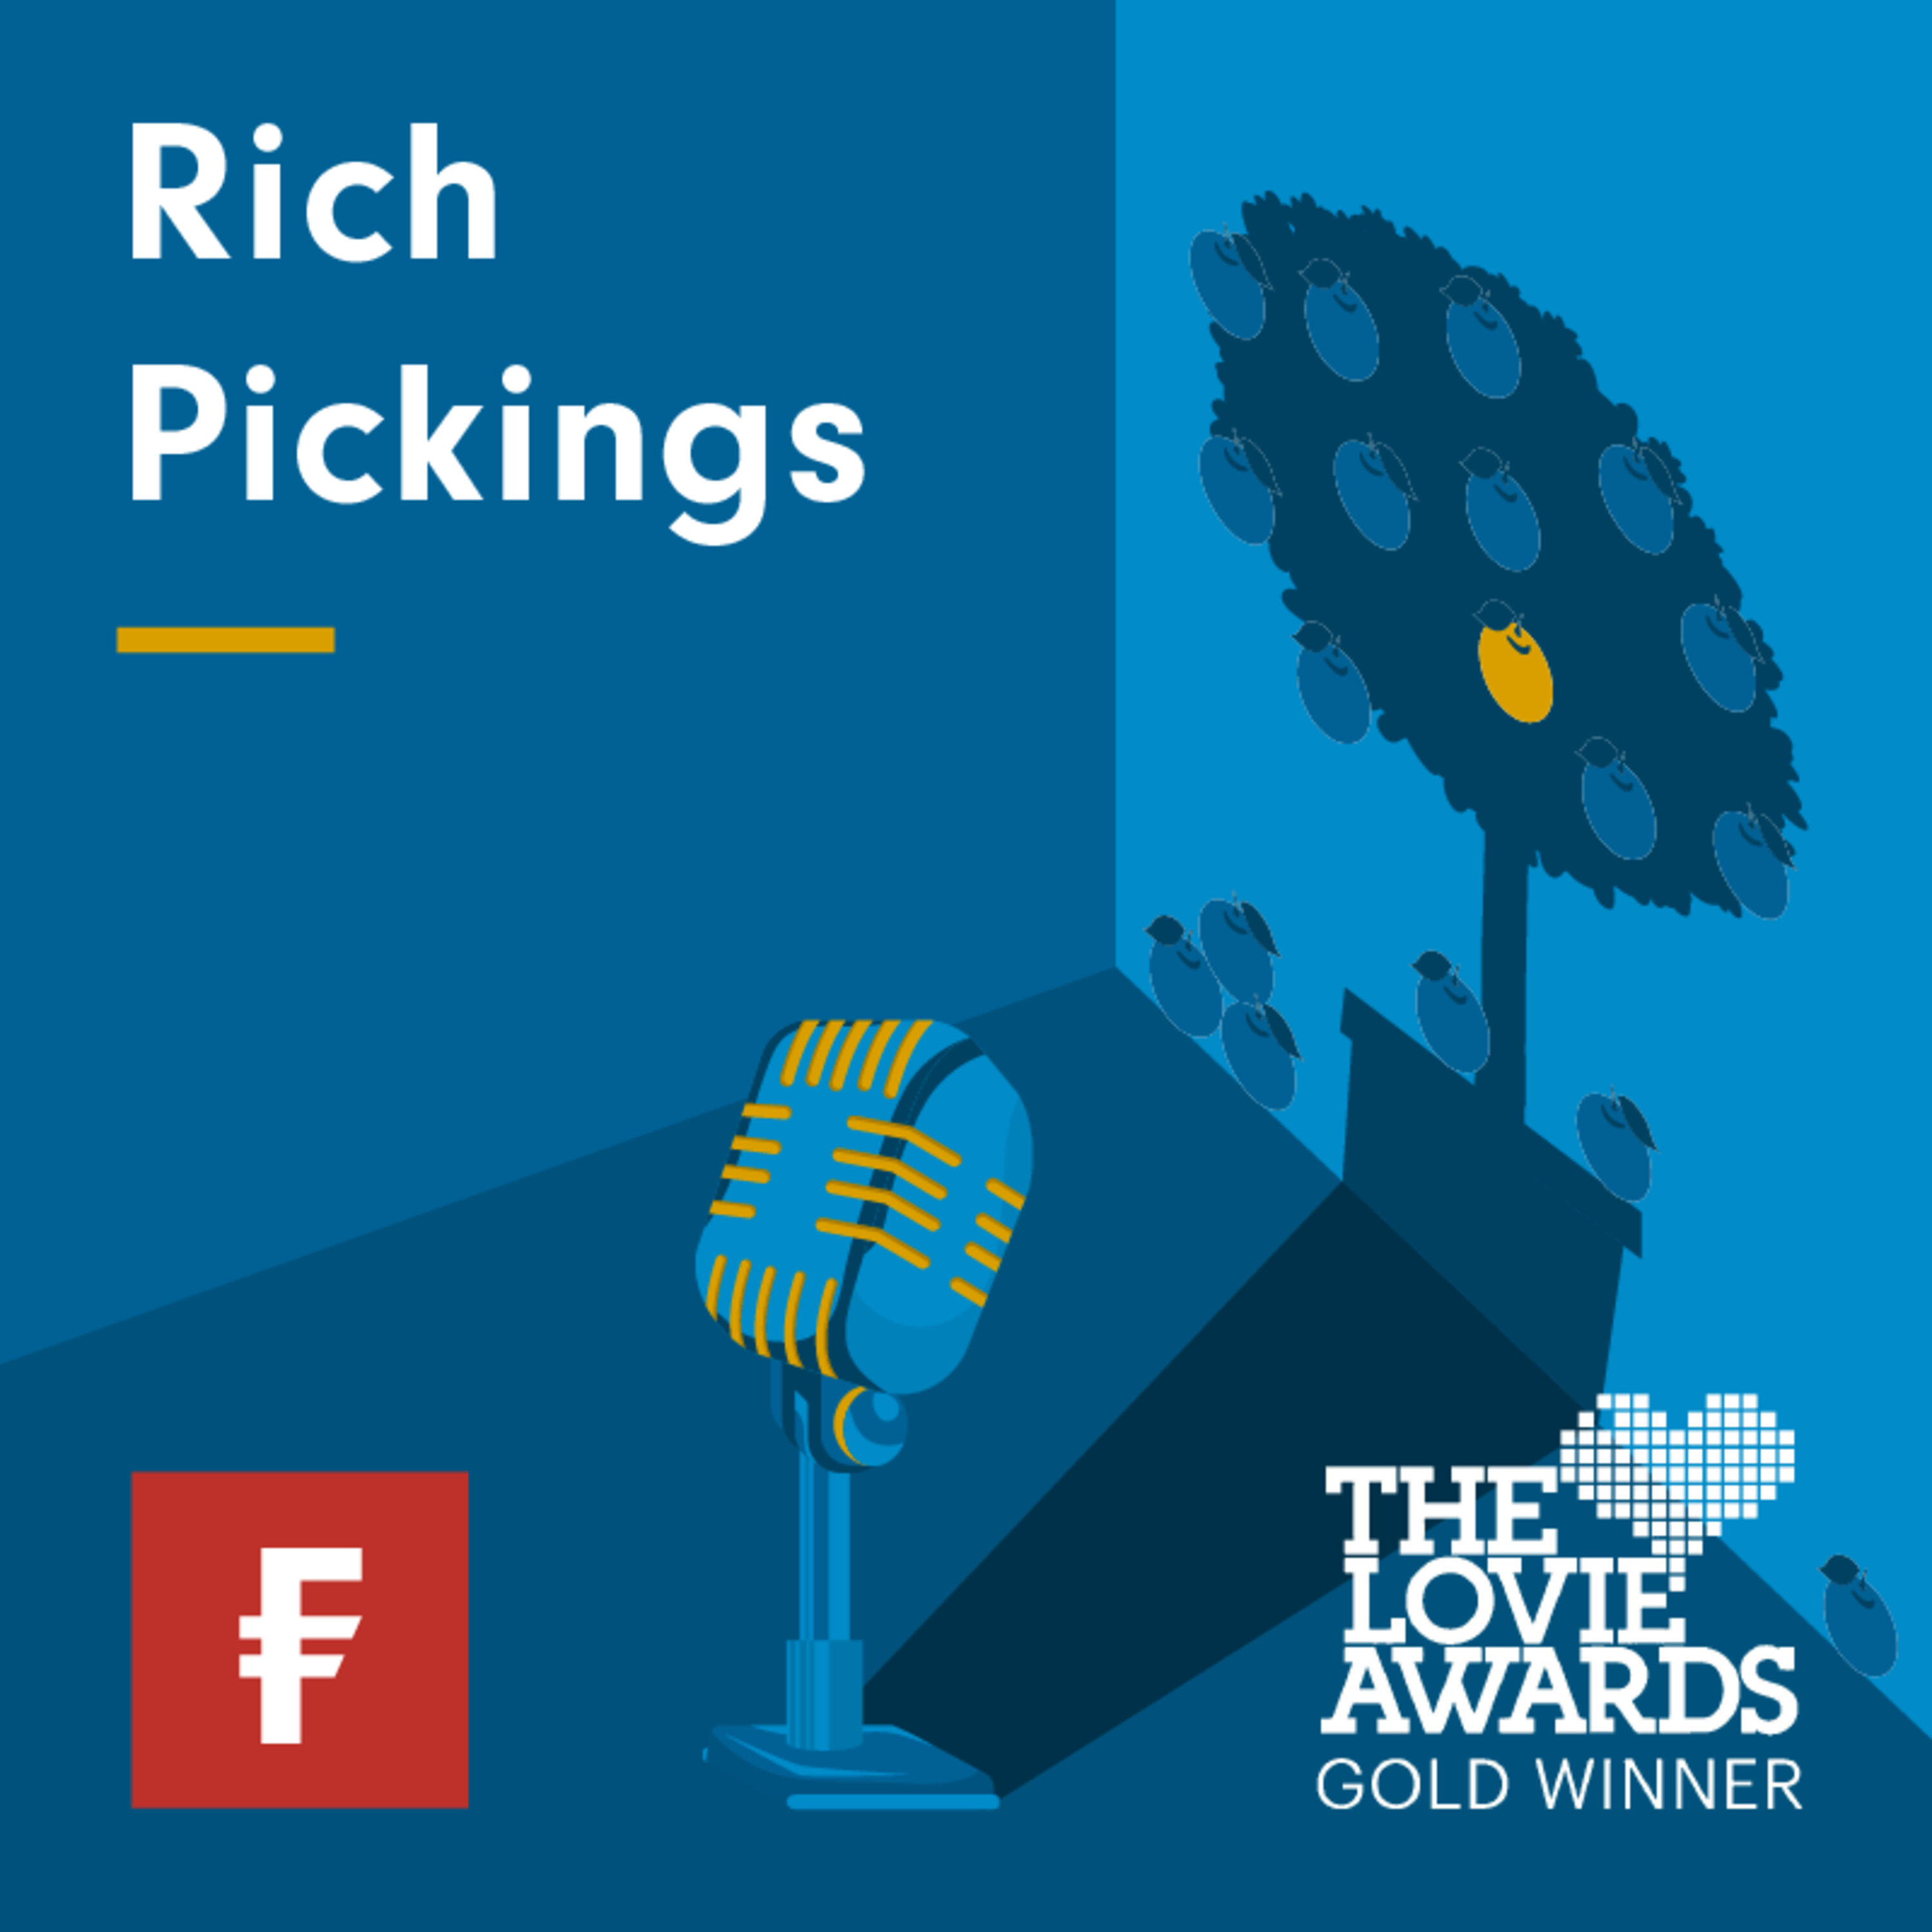 Rich Pickings: Counting down the days - the 2021 Analyst Survey